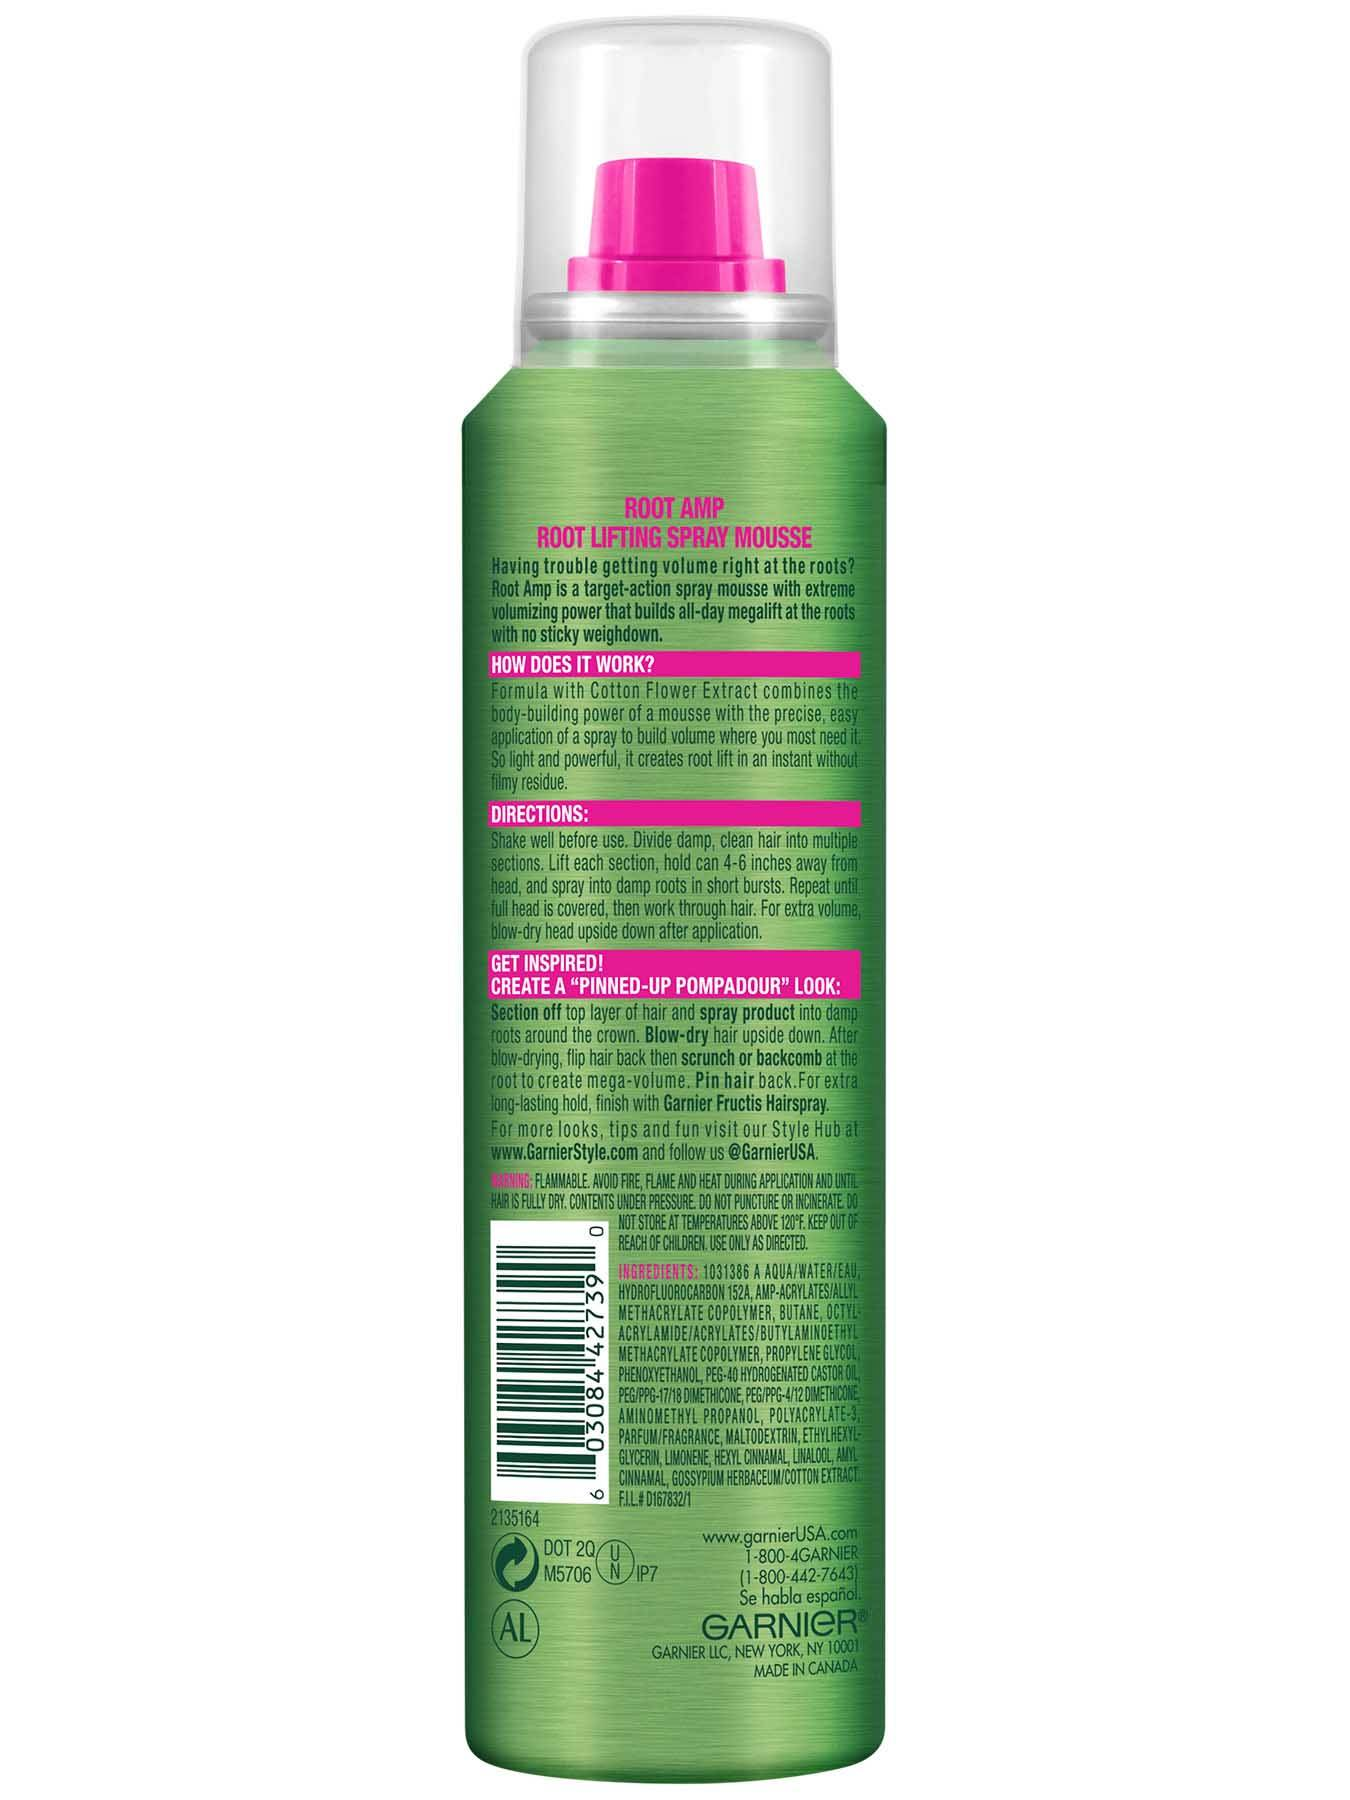 Back view of Root Amp Root Lifting Spray Mousse.